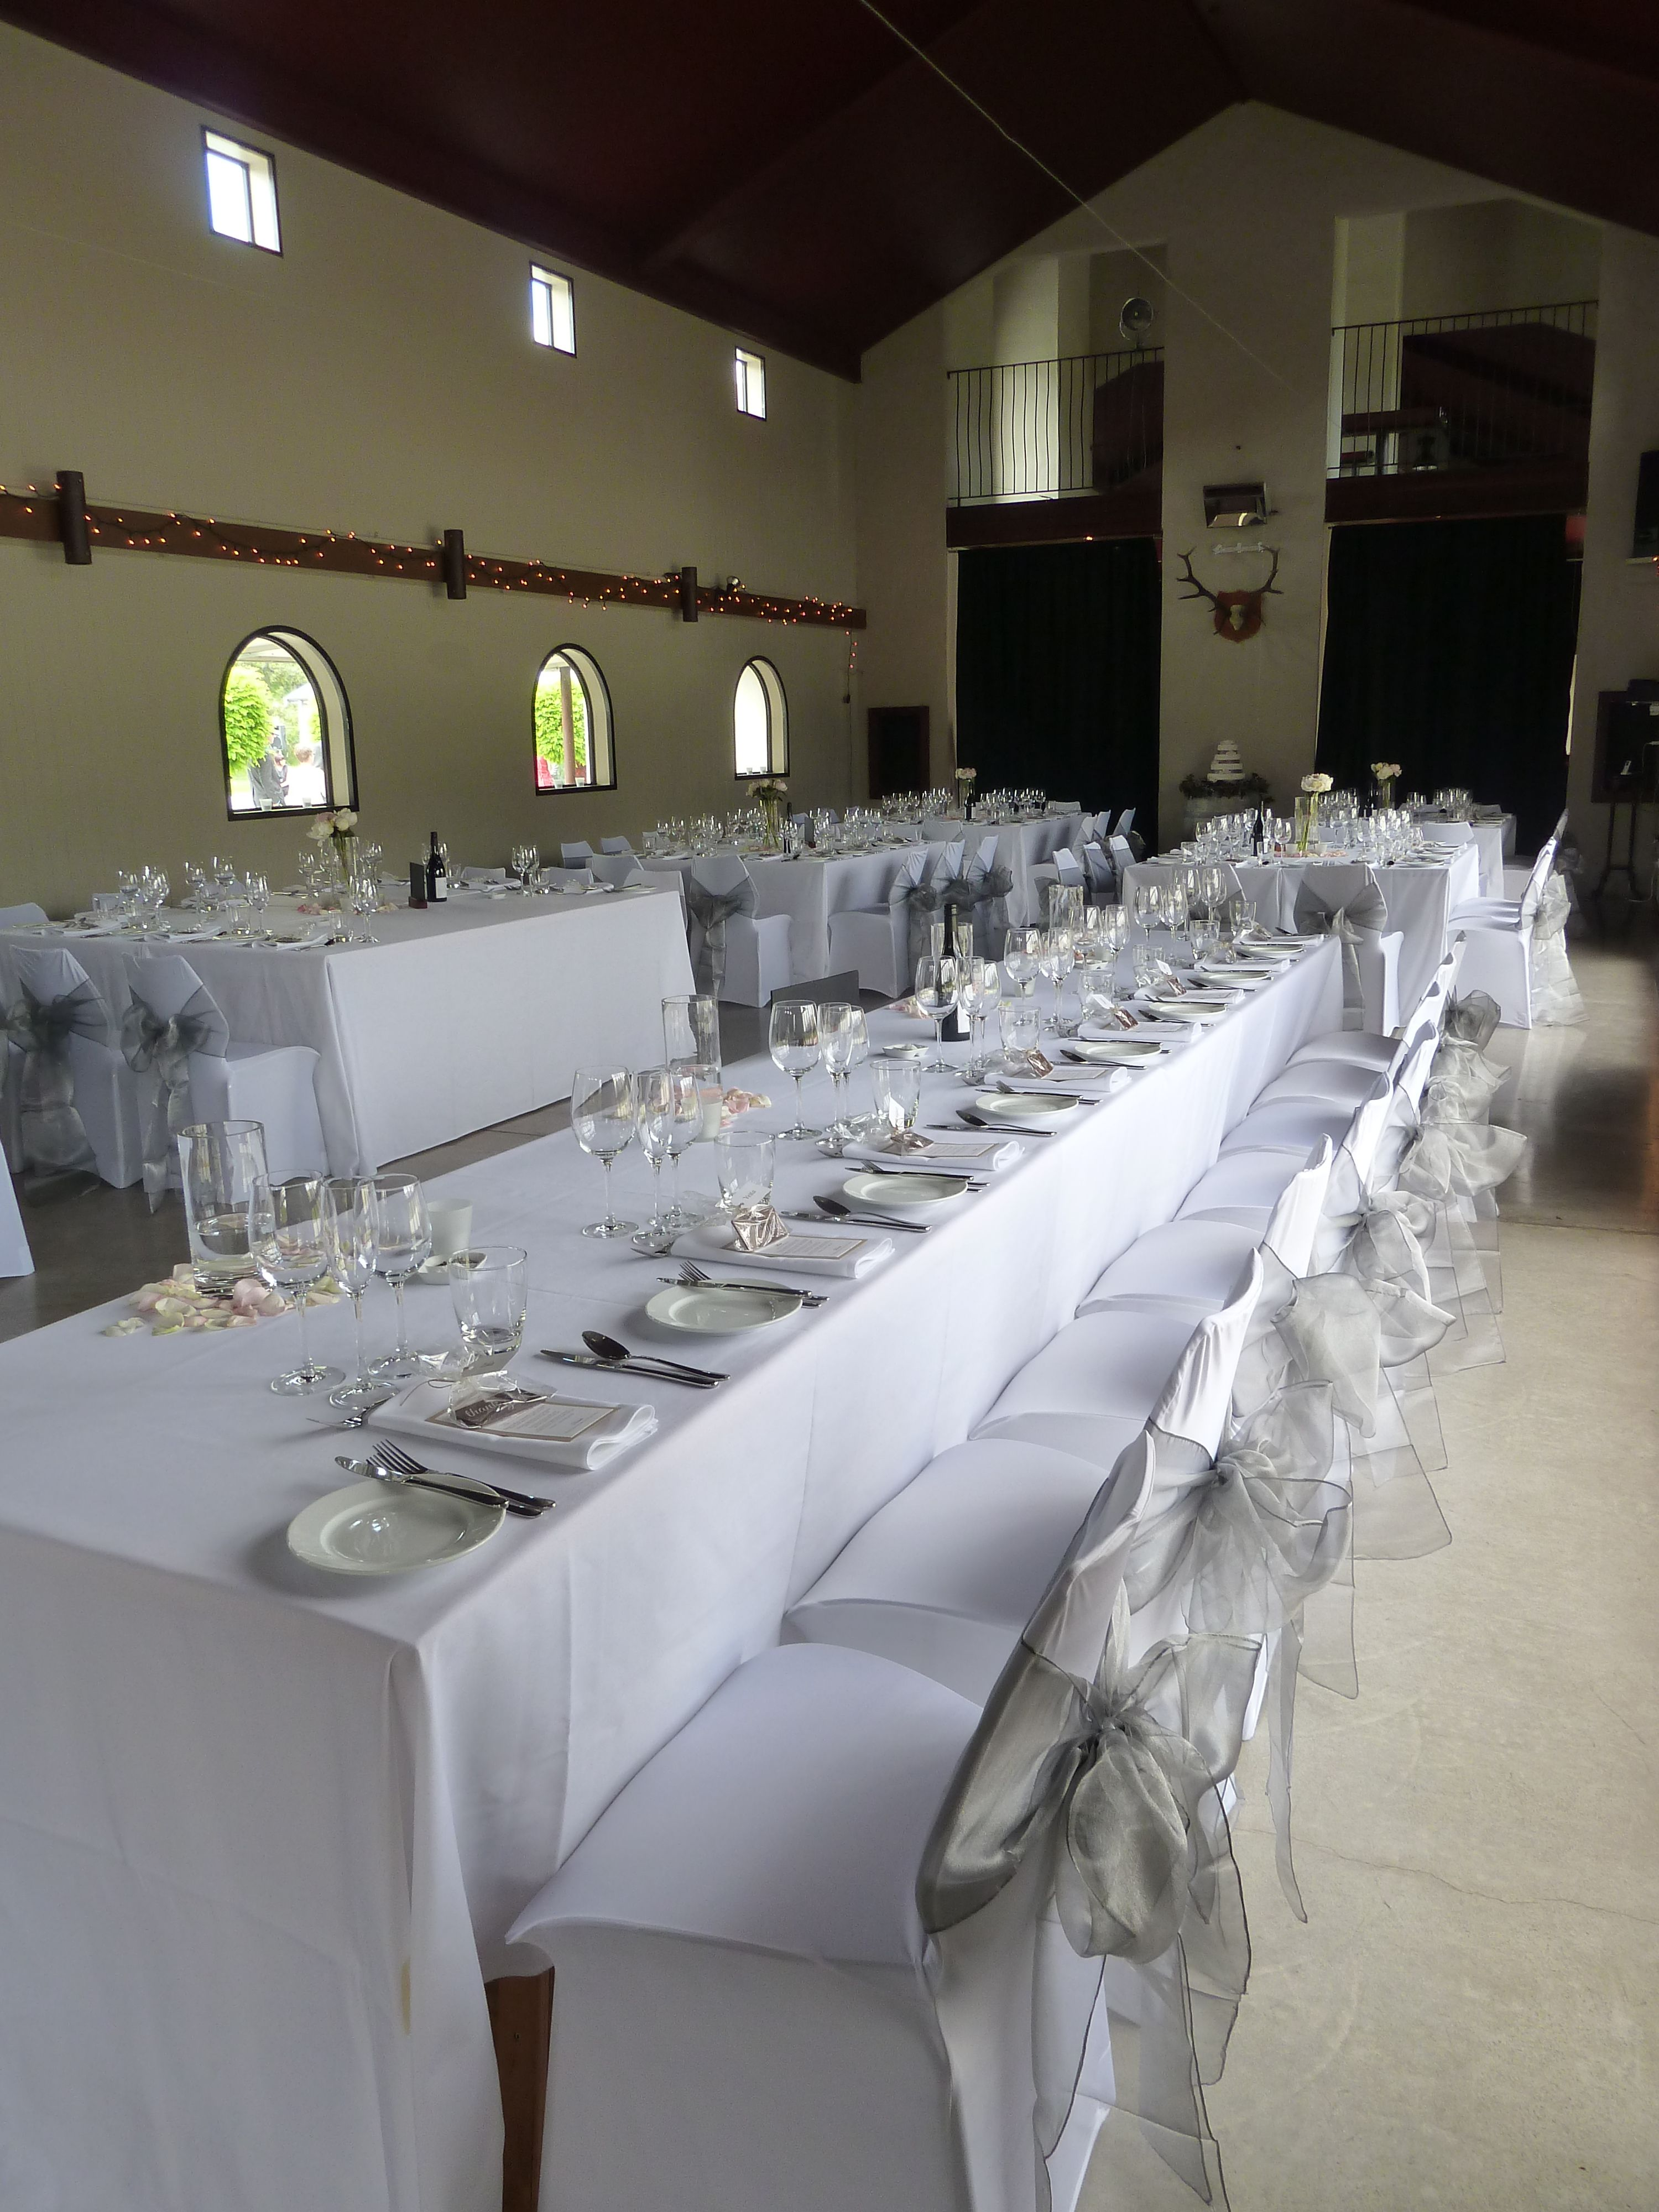 wedding chair covers melbourne swivel armless silver organza sashes or table runners with white